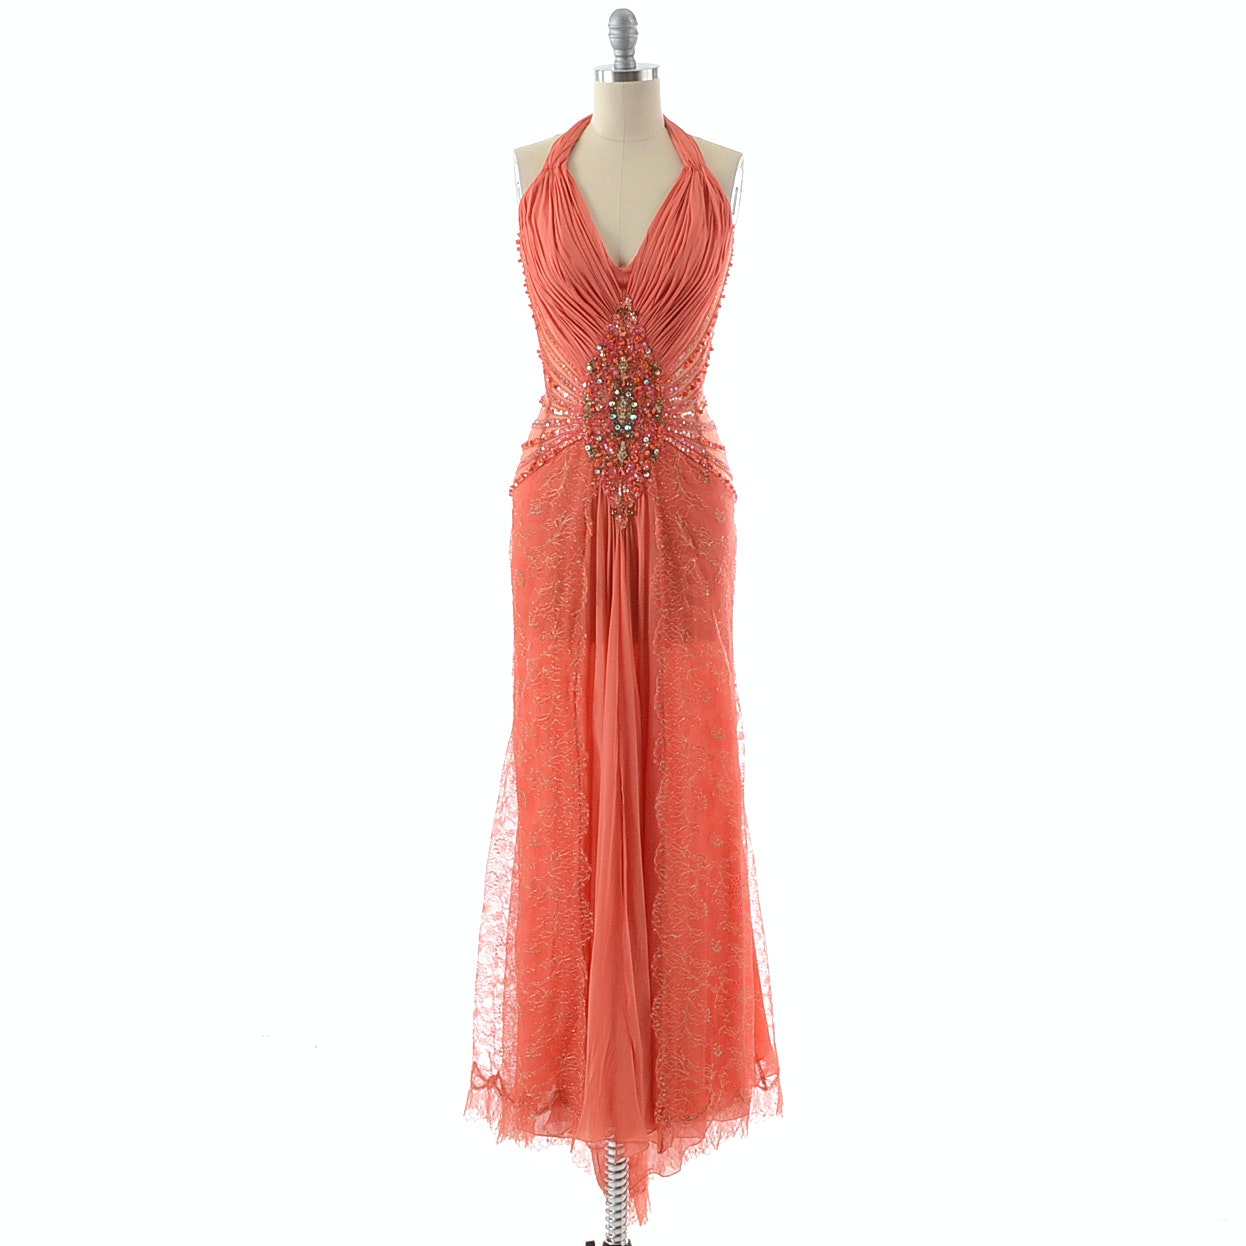 Stunning Coral Silk Chiffon and Gold Metallic Mesh Lace Halter Gown Embellished with Prong Set Aurora Borealis Crystal Rhinestones and Sequins